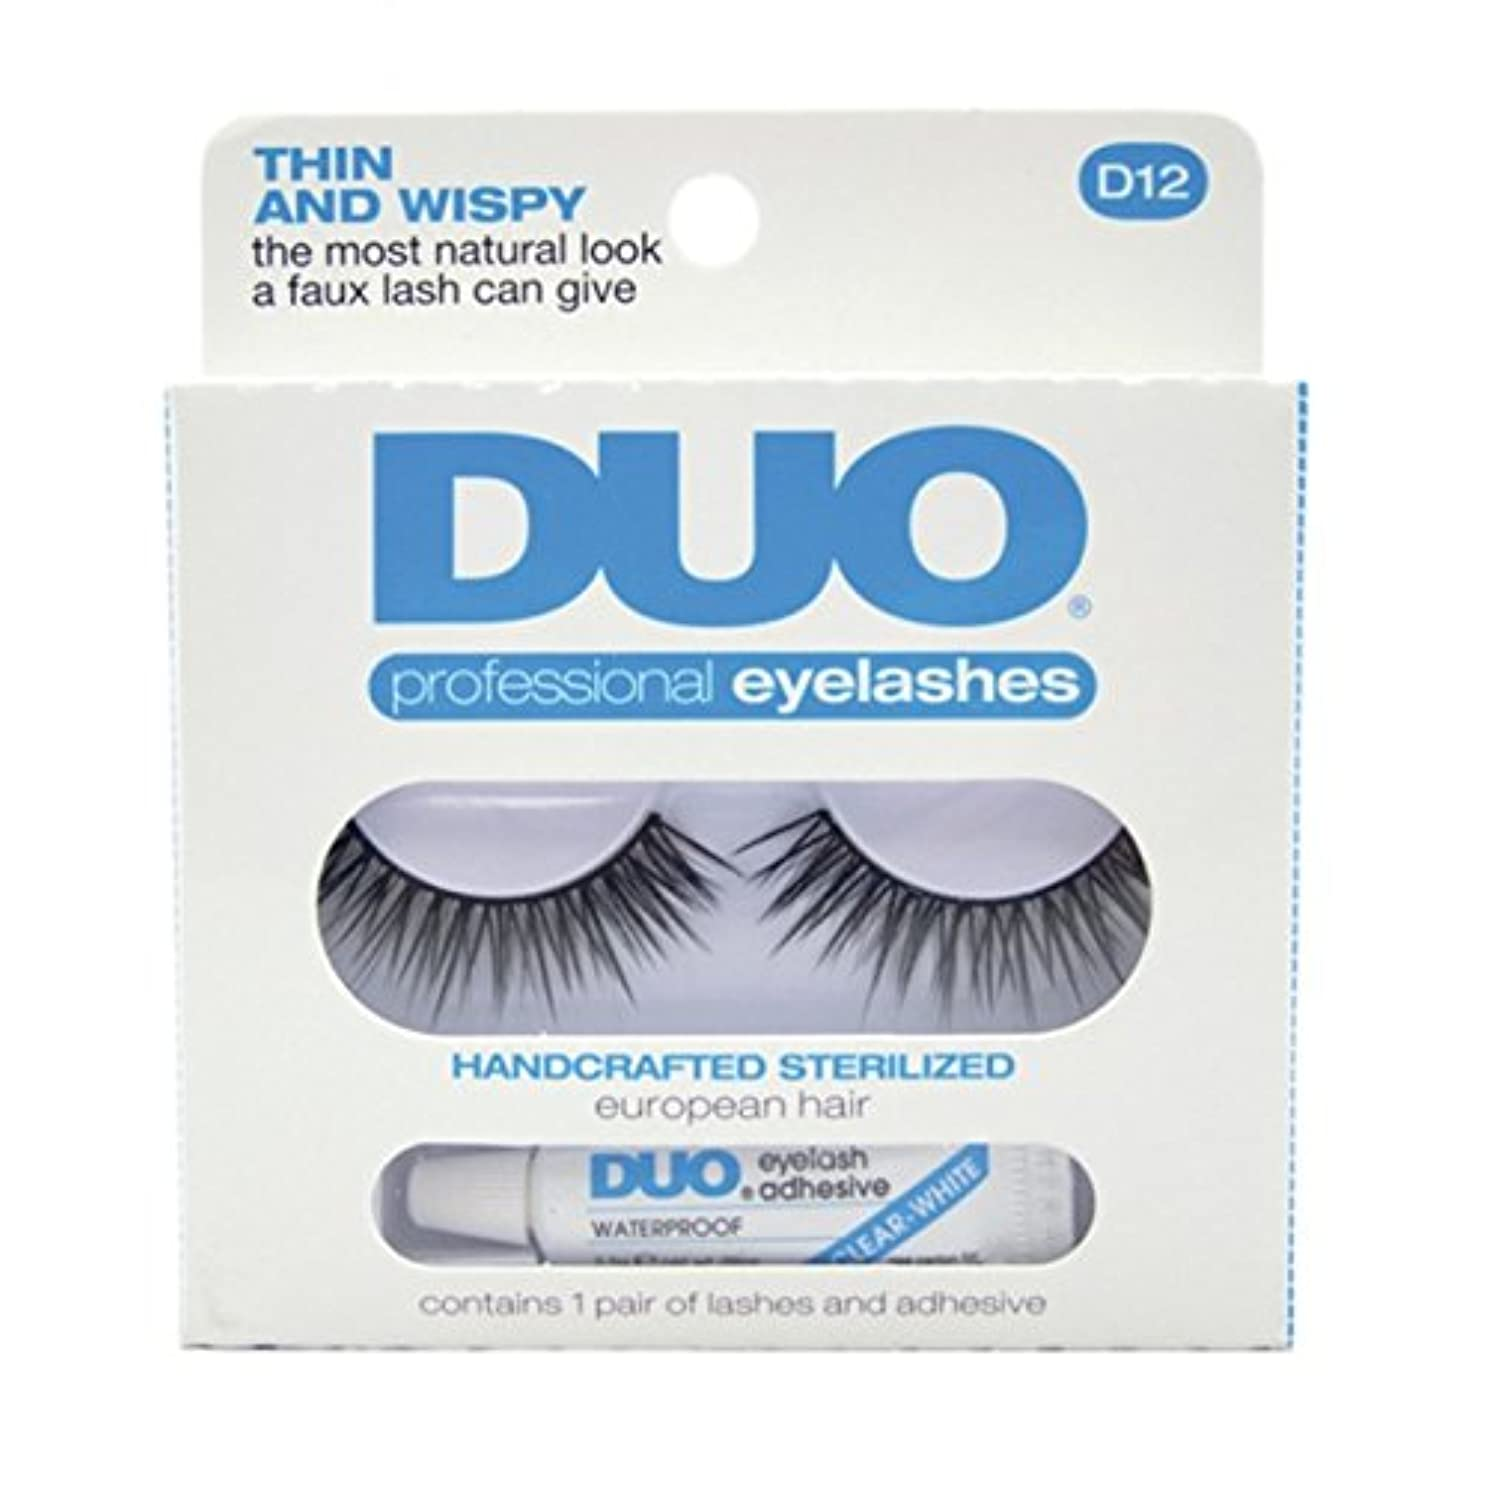 DUO Eyelash Adhesive Think and Wispy D12 Eyelashes Thin and Wispy (並行輸入品)